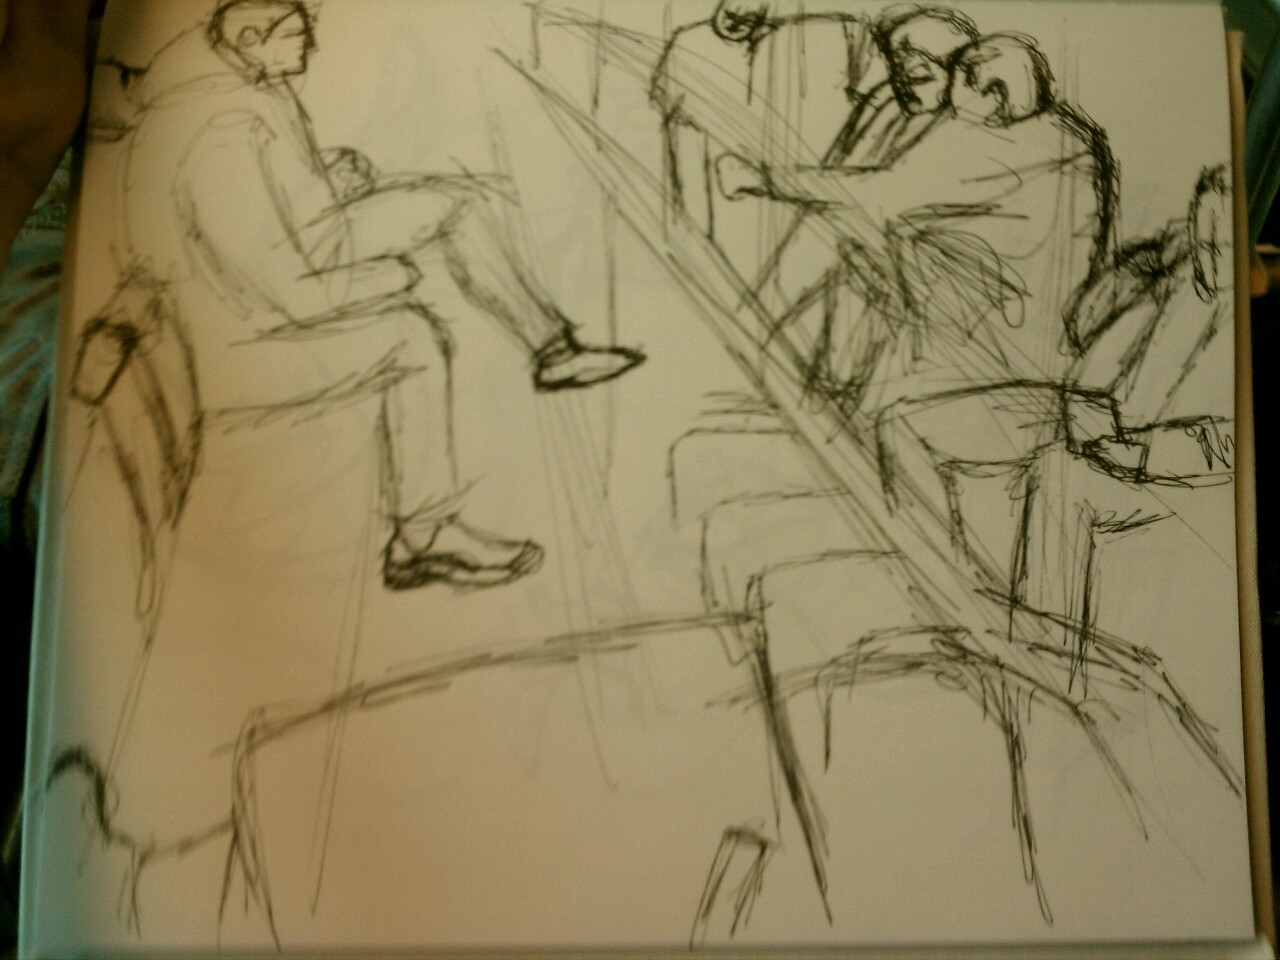 Working out how to do gesture work. I'm not sure how great this is but it looked roughly like people last time I checked